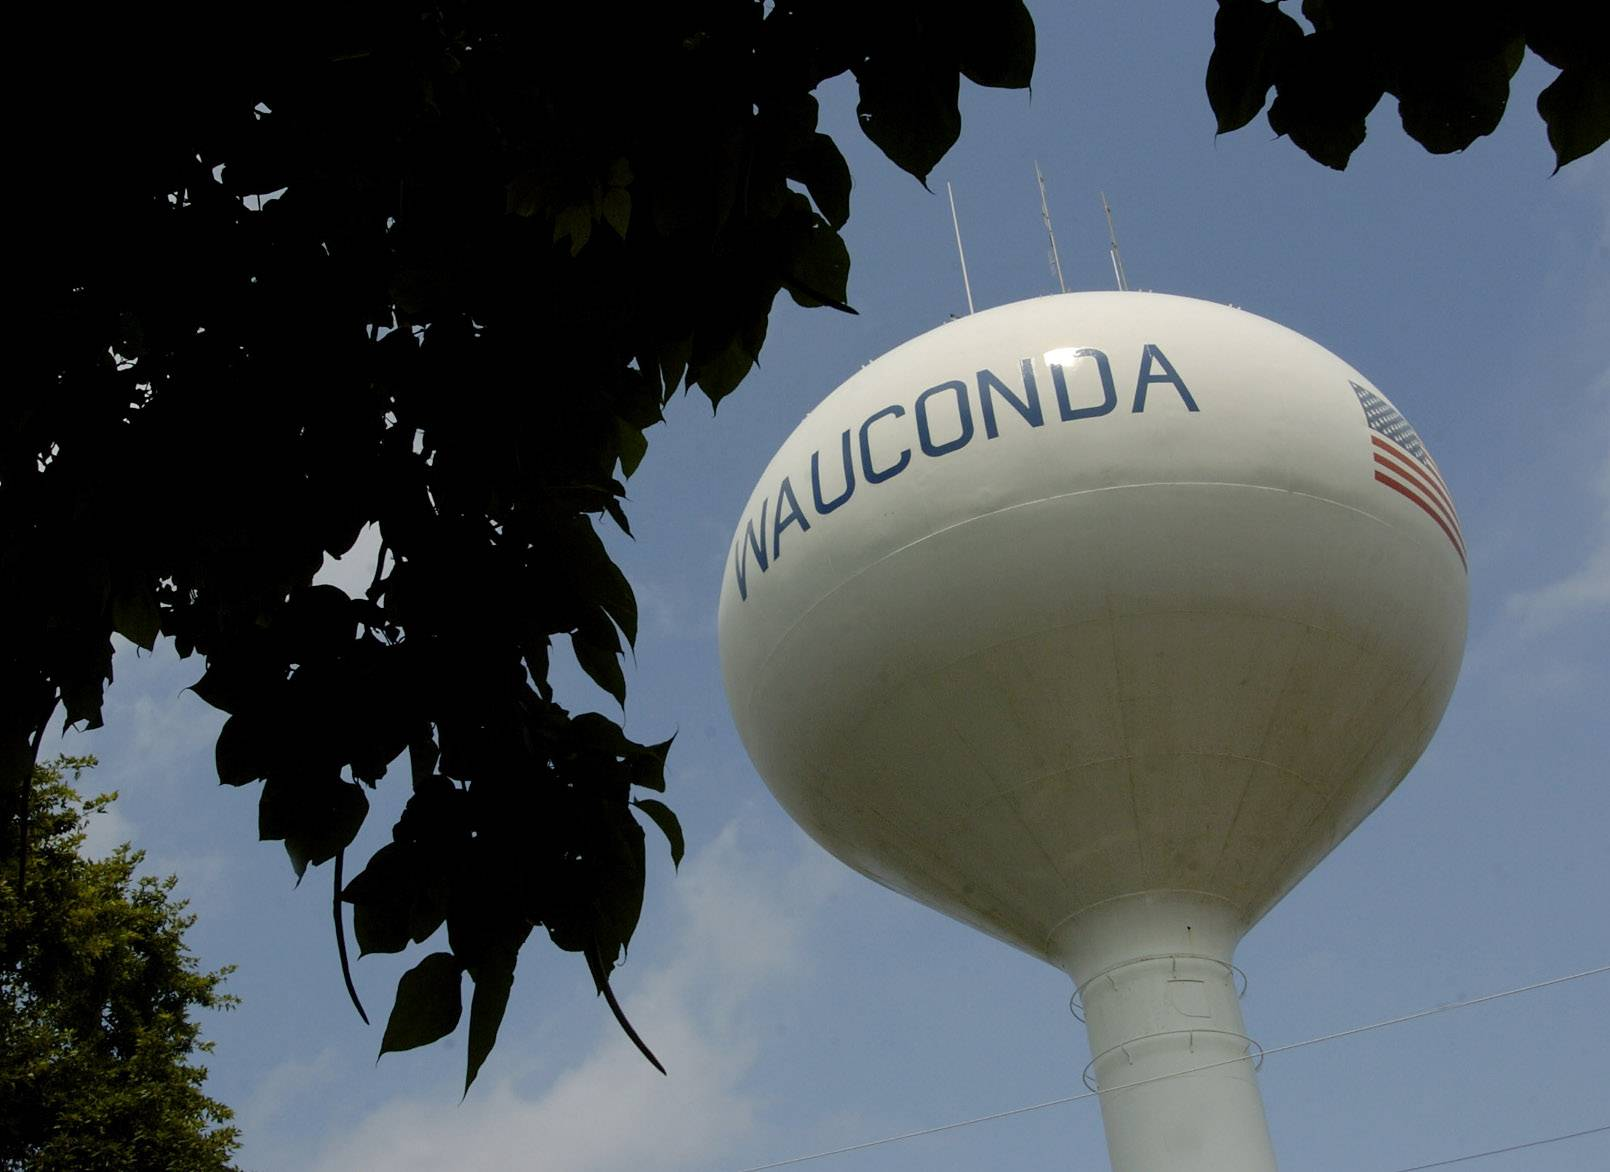 Pay raises approved for Wauconda mayor and clerk, but not until 2021